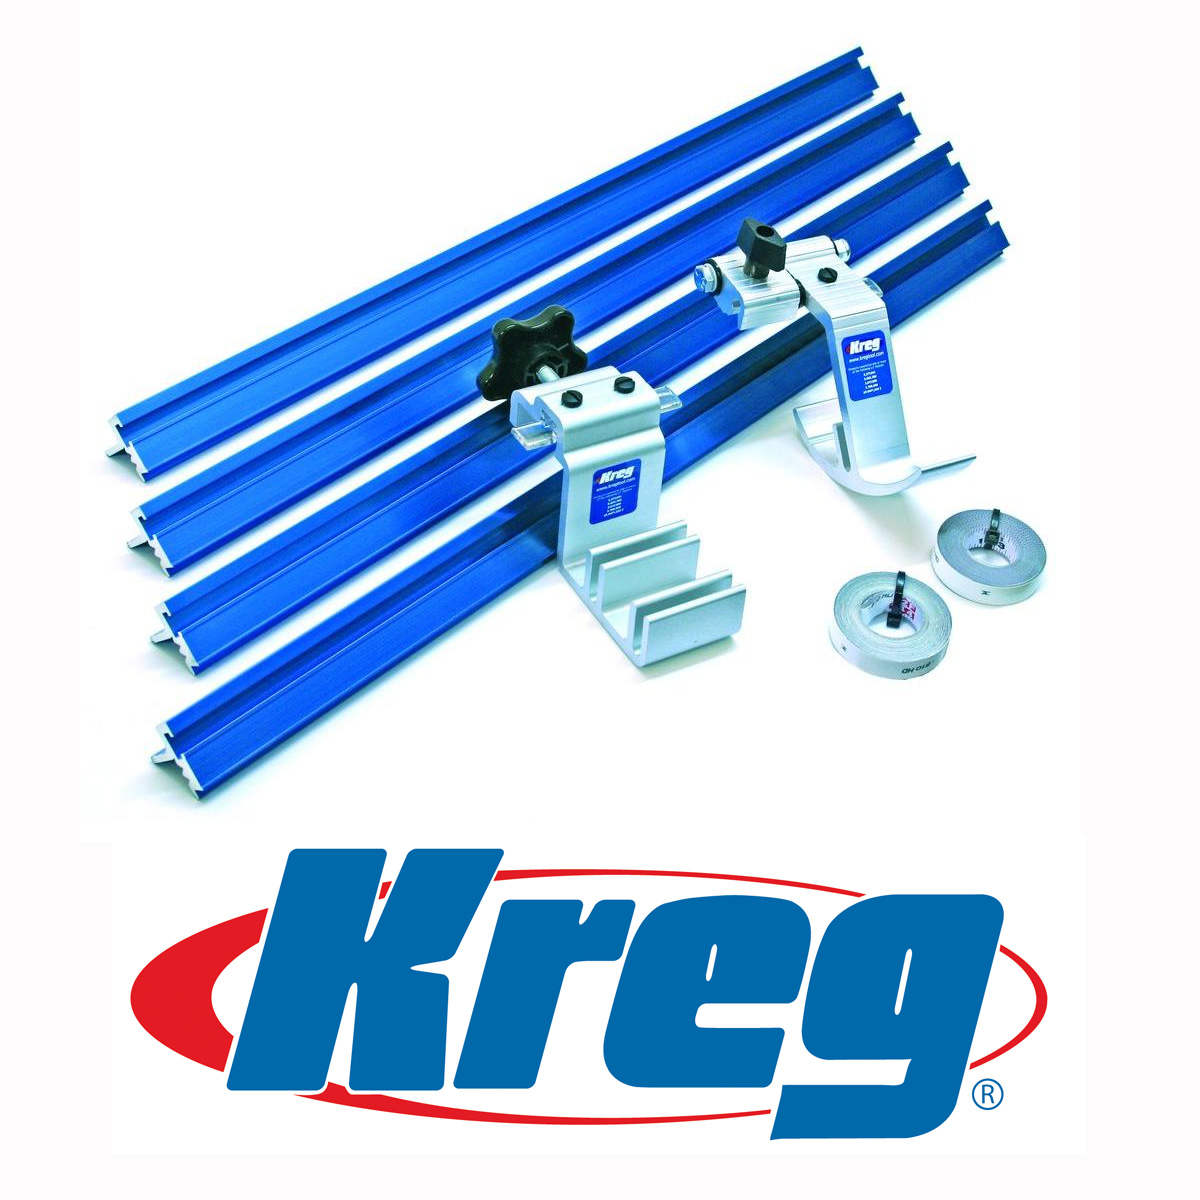 Kreg Tools And Accessories image